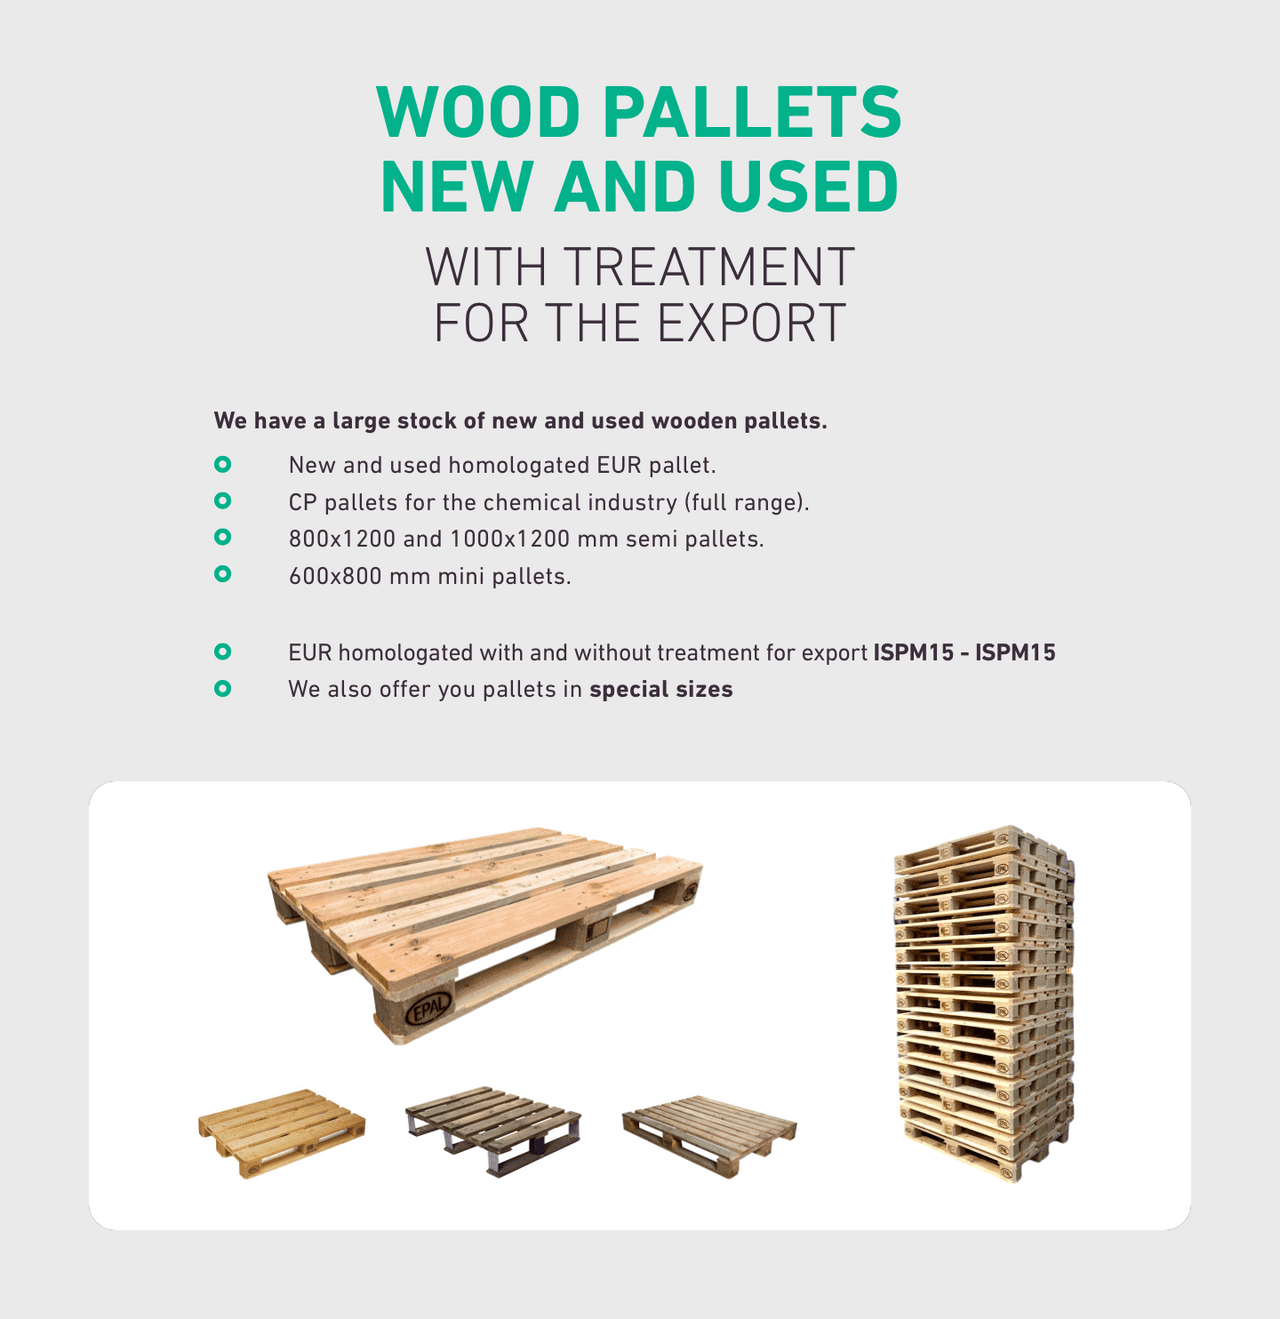 WOOD PALLETS NEW AND USED WITH TREATMENT FOR THE EXPORT